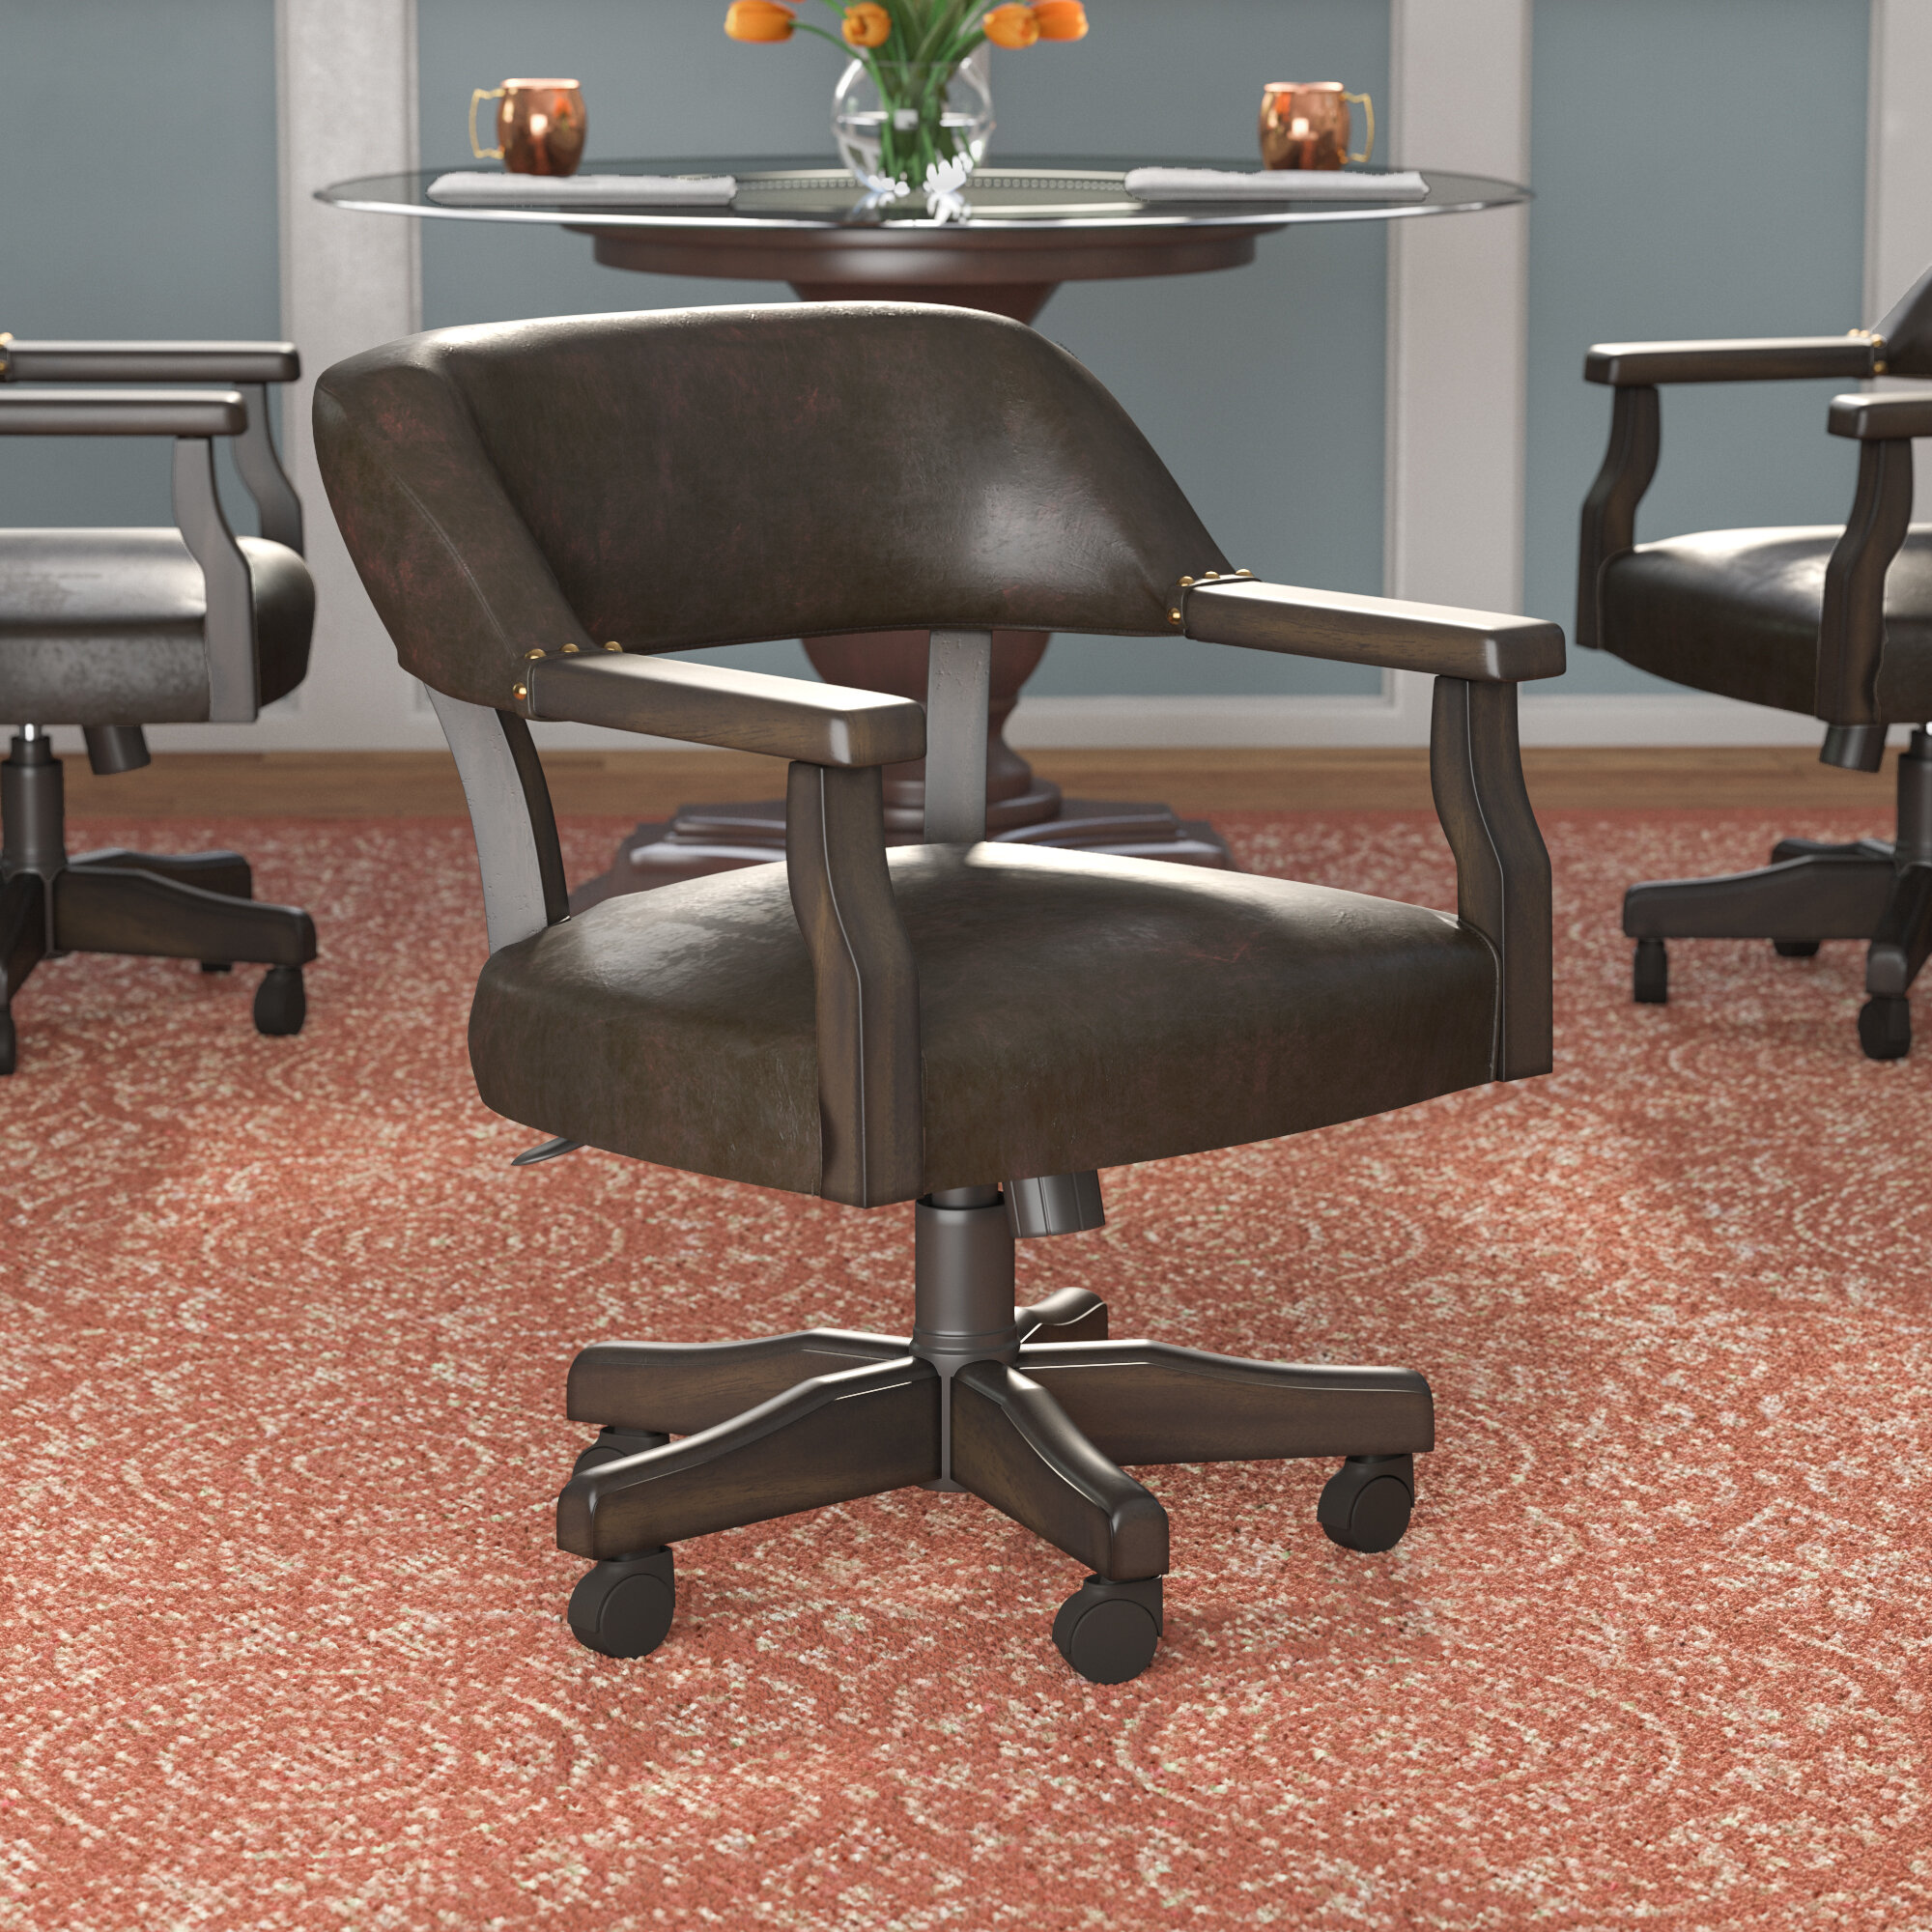 Kitchen & Dining Chairs with Casters